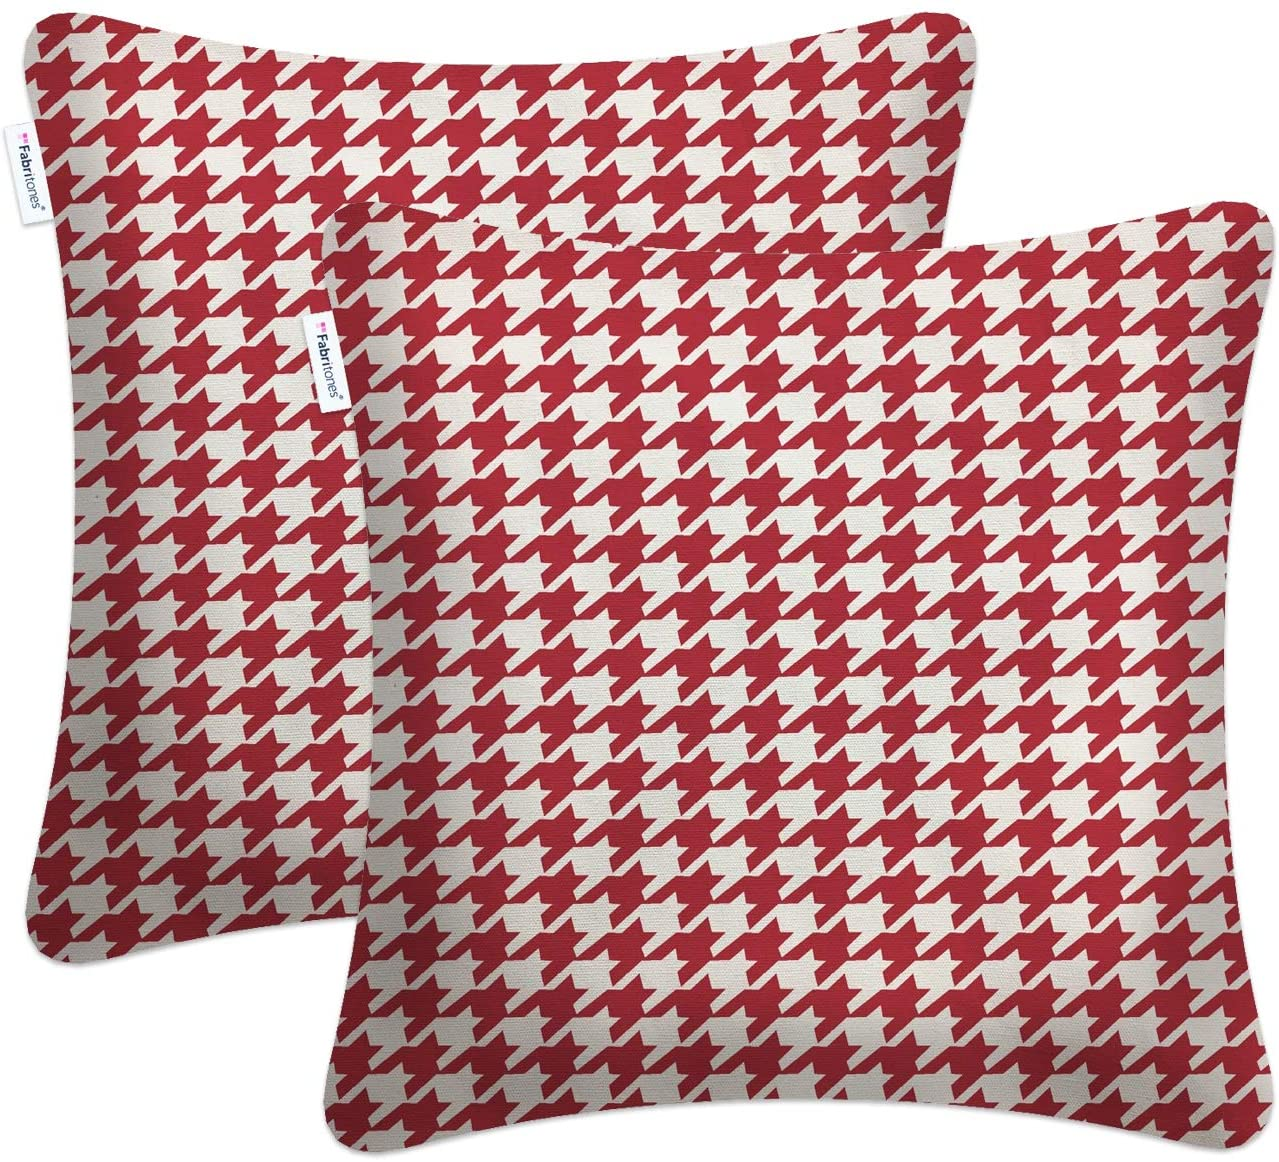 Fabritones Red Houndstooth Pillow